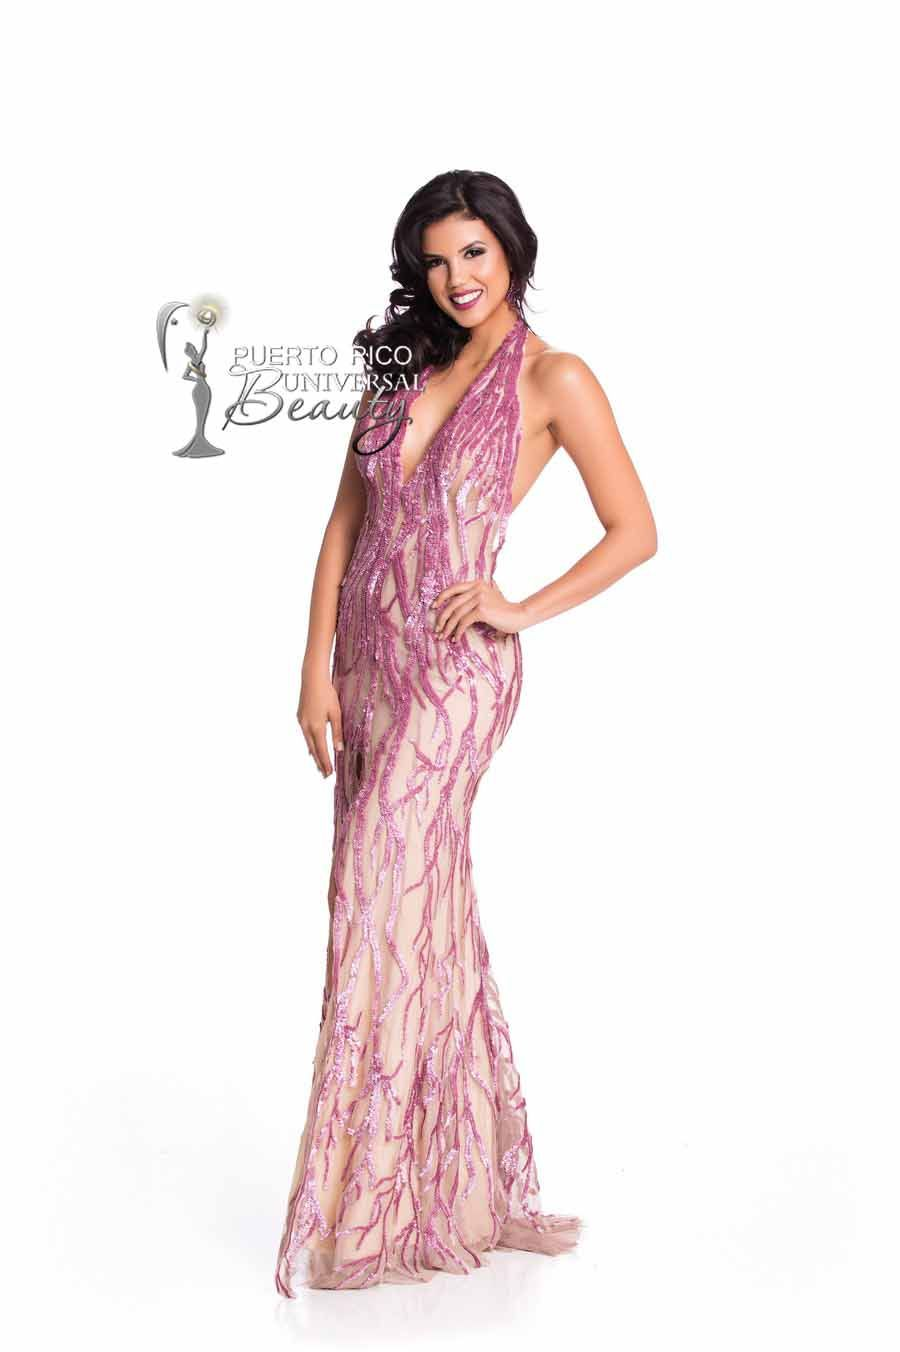 MISS UNIVERSE 2015 :: EVENING GOWN | Francesca Cipriani, Miss ...